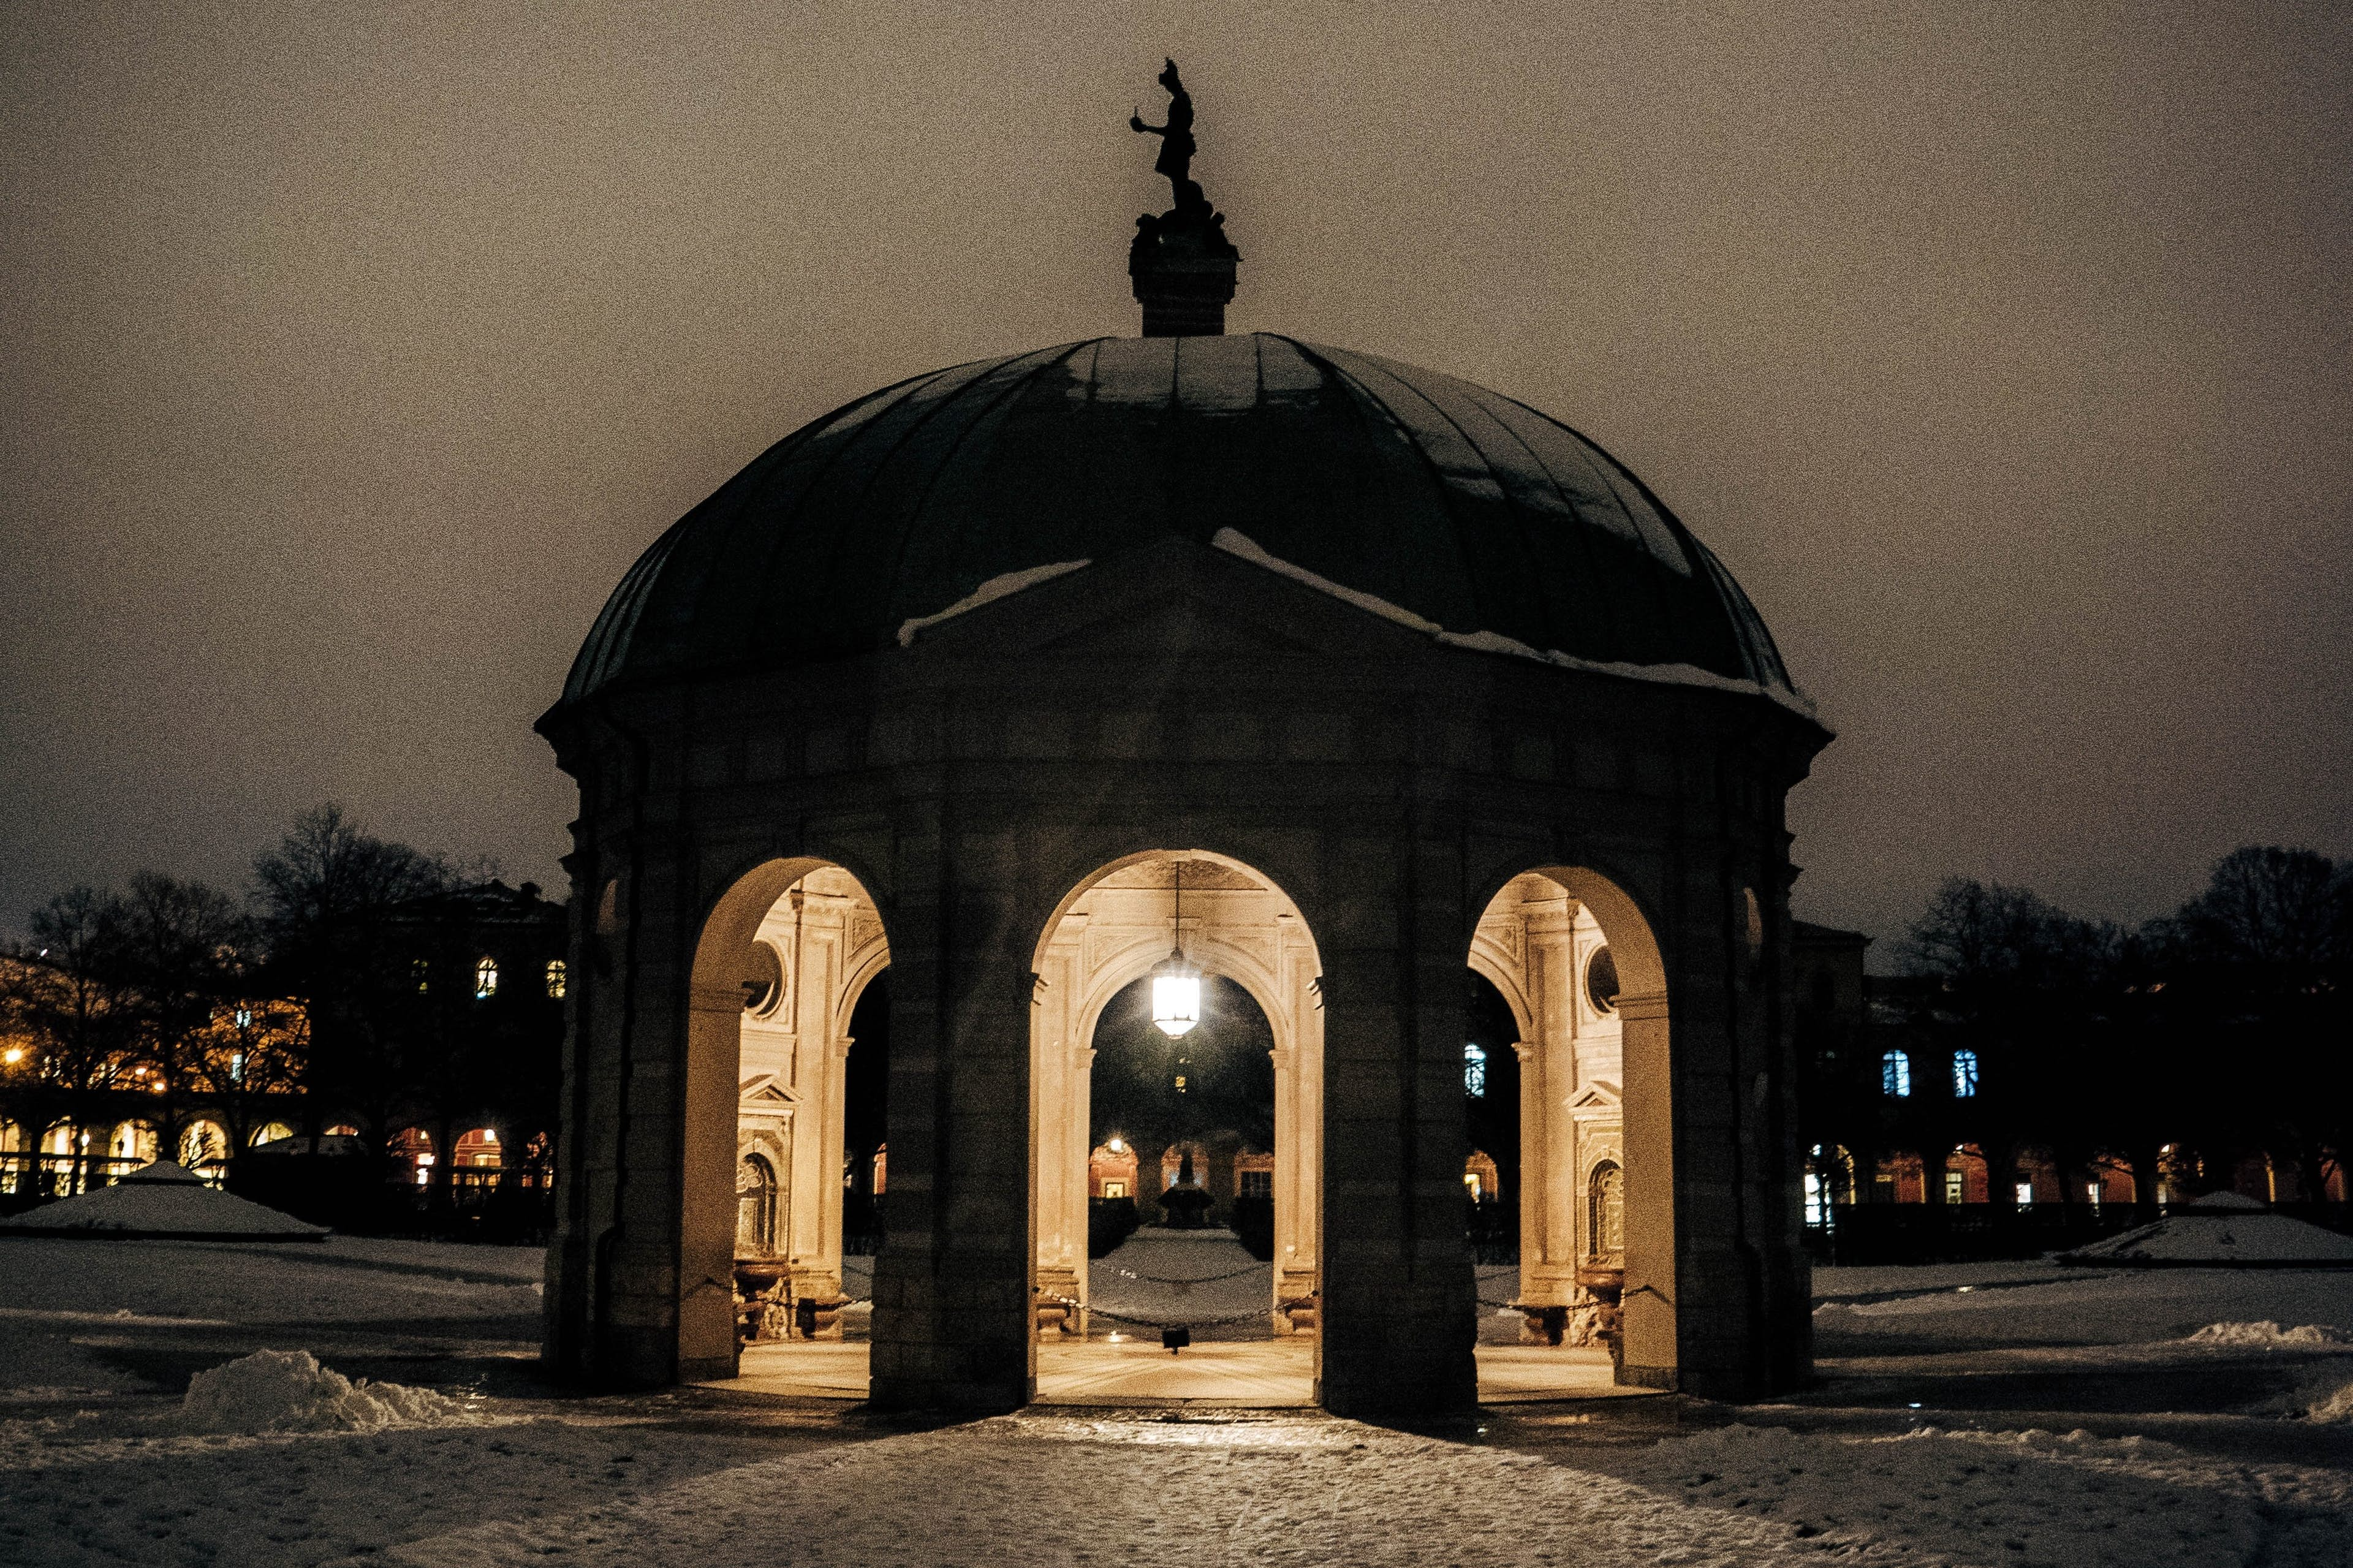 Ghosts of Munich: The Haunting Stories image